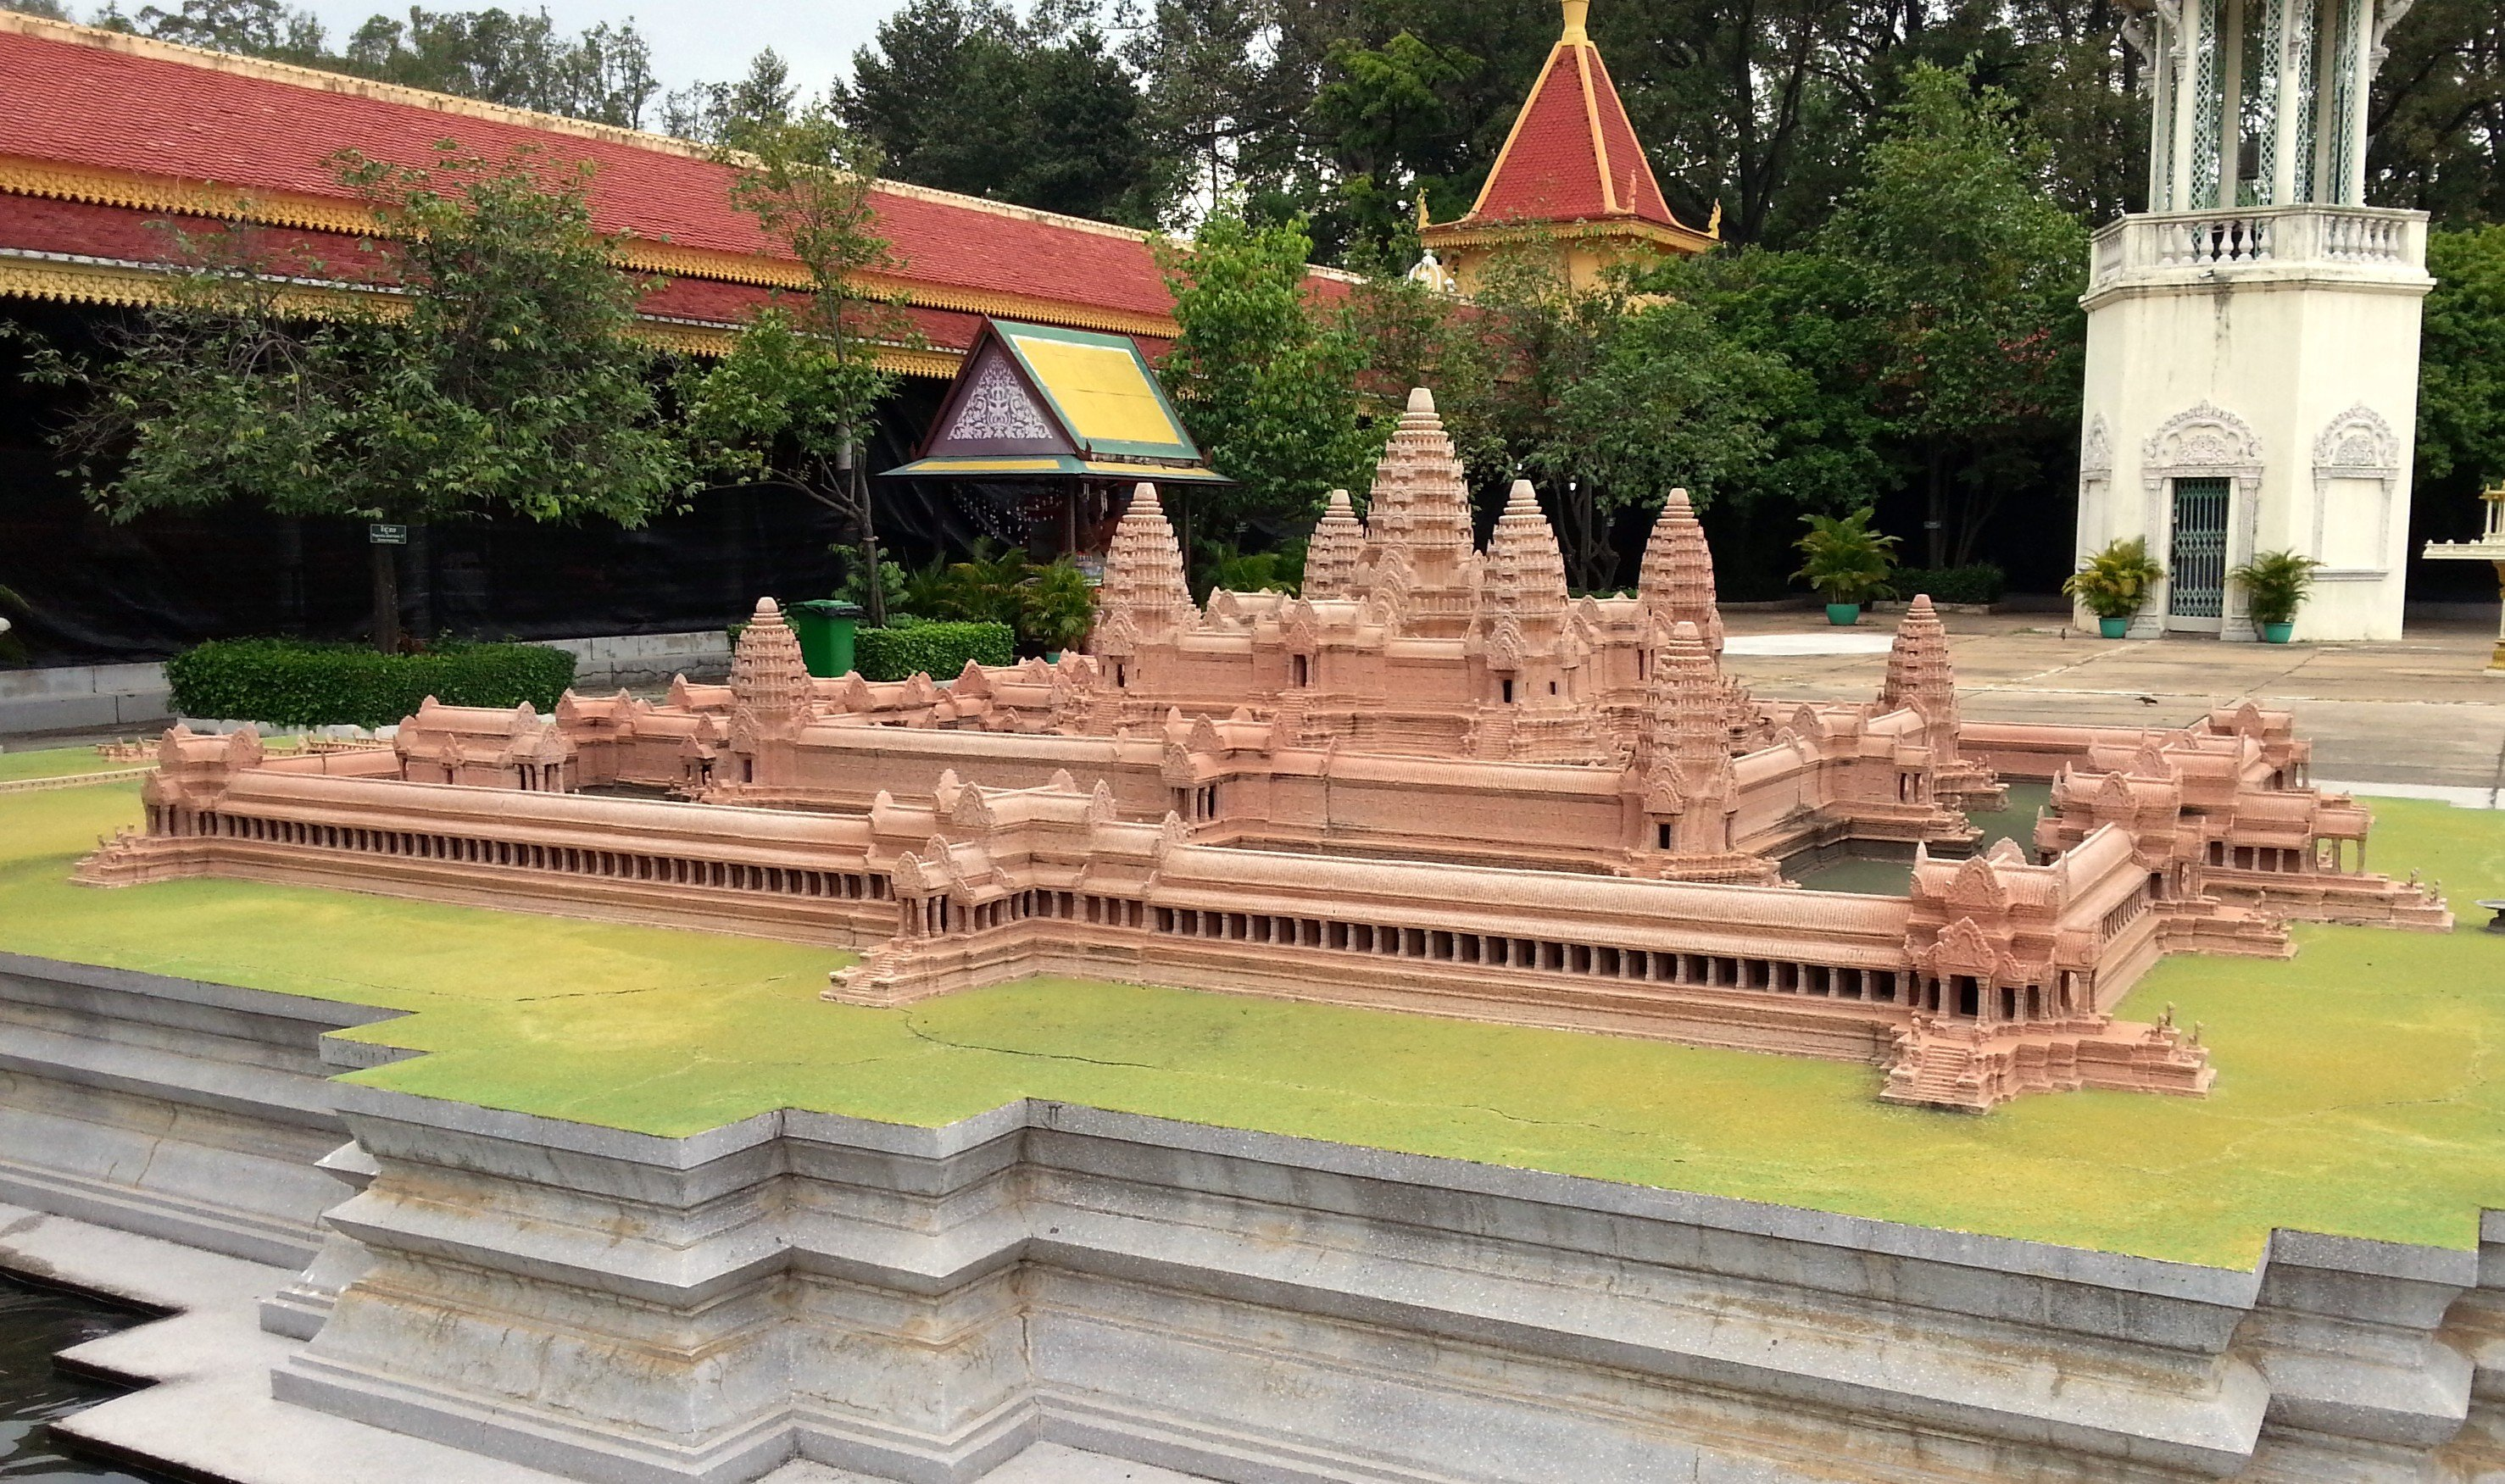 Model of Angkor Wat at the Royal Palace